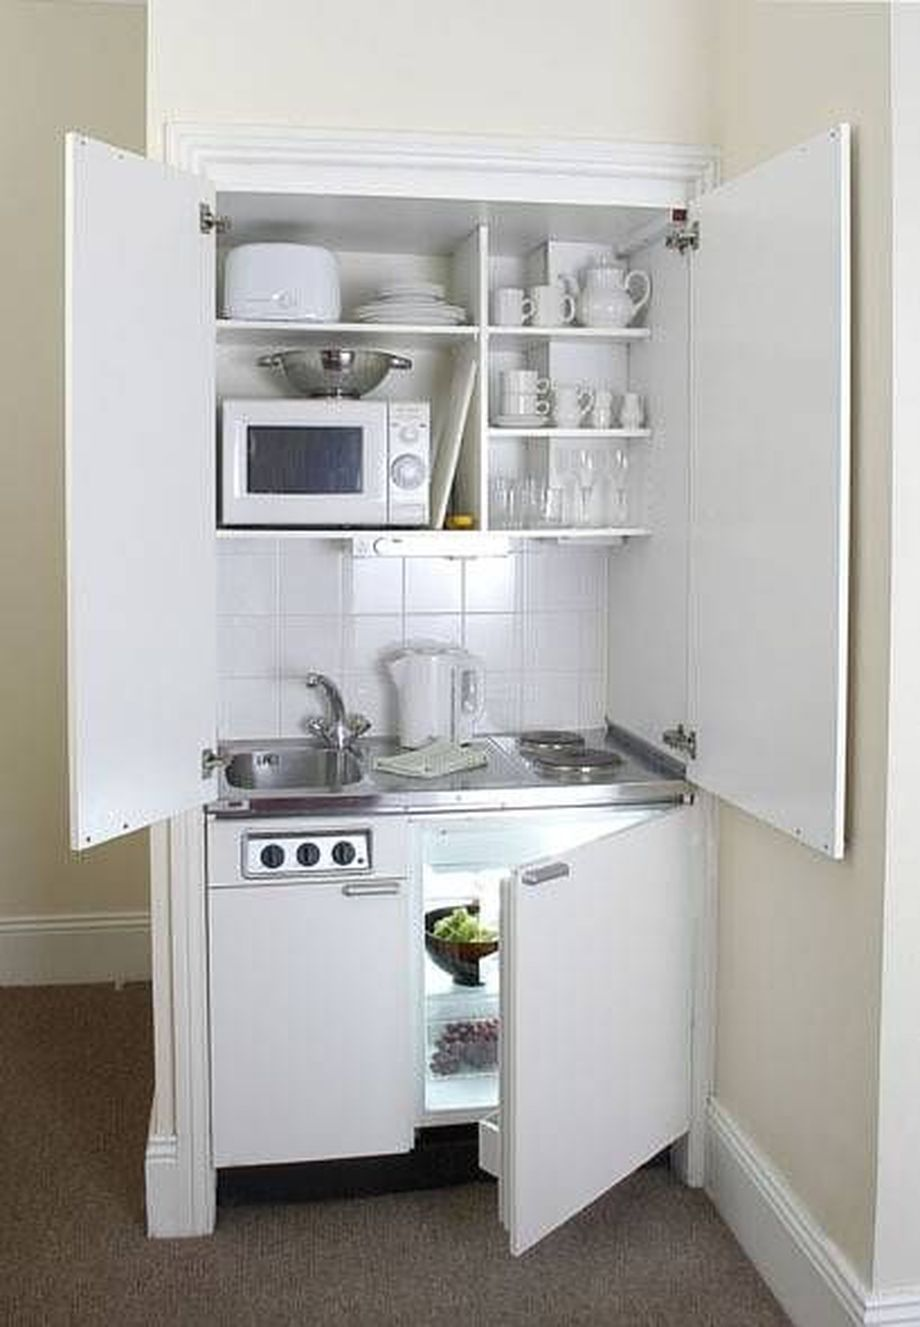 50 Best Ideas How To Make Small Kitchen On Apartment Hoommy Com Small Apartment Kitchen Small Kitchenette Small Space Kitchen